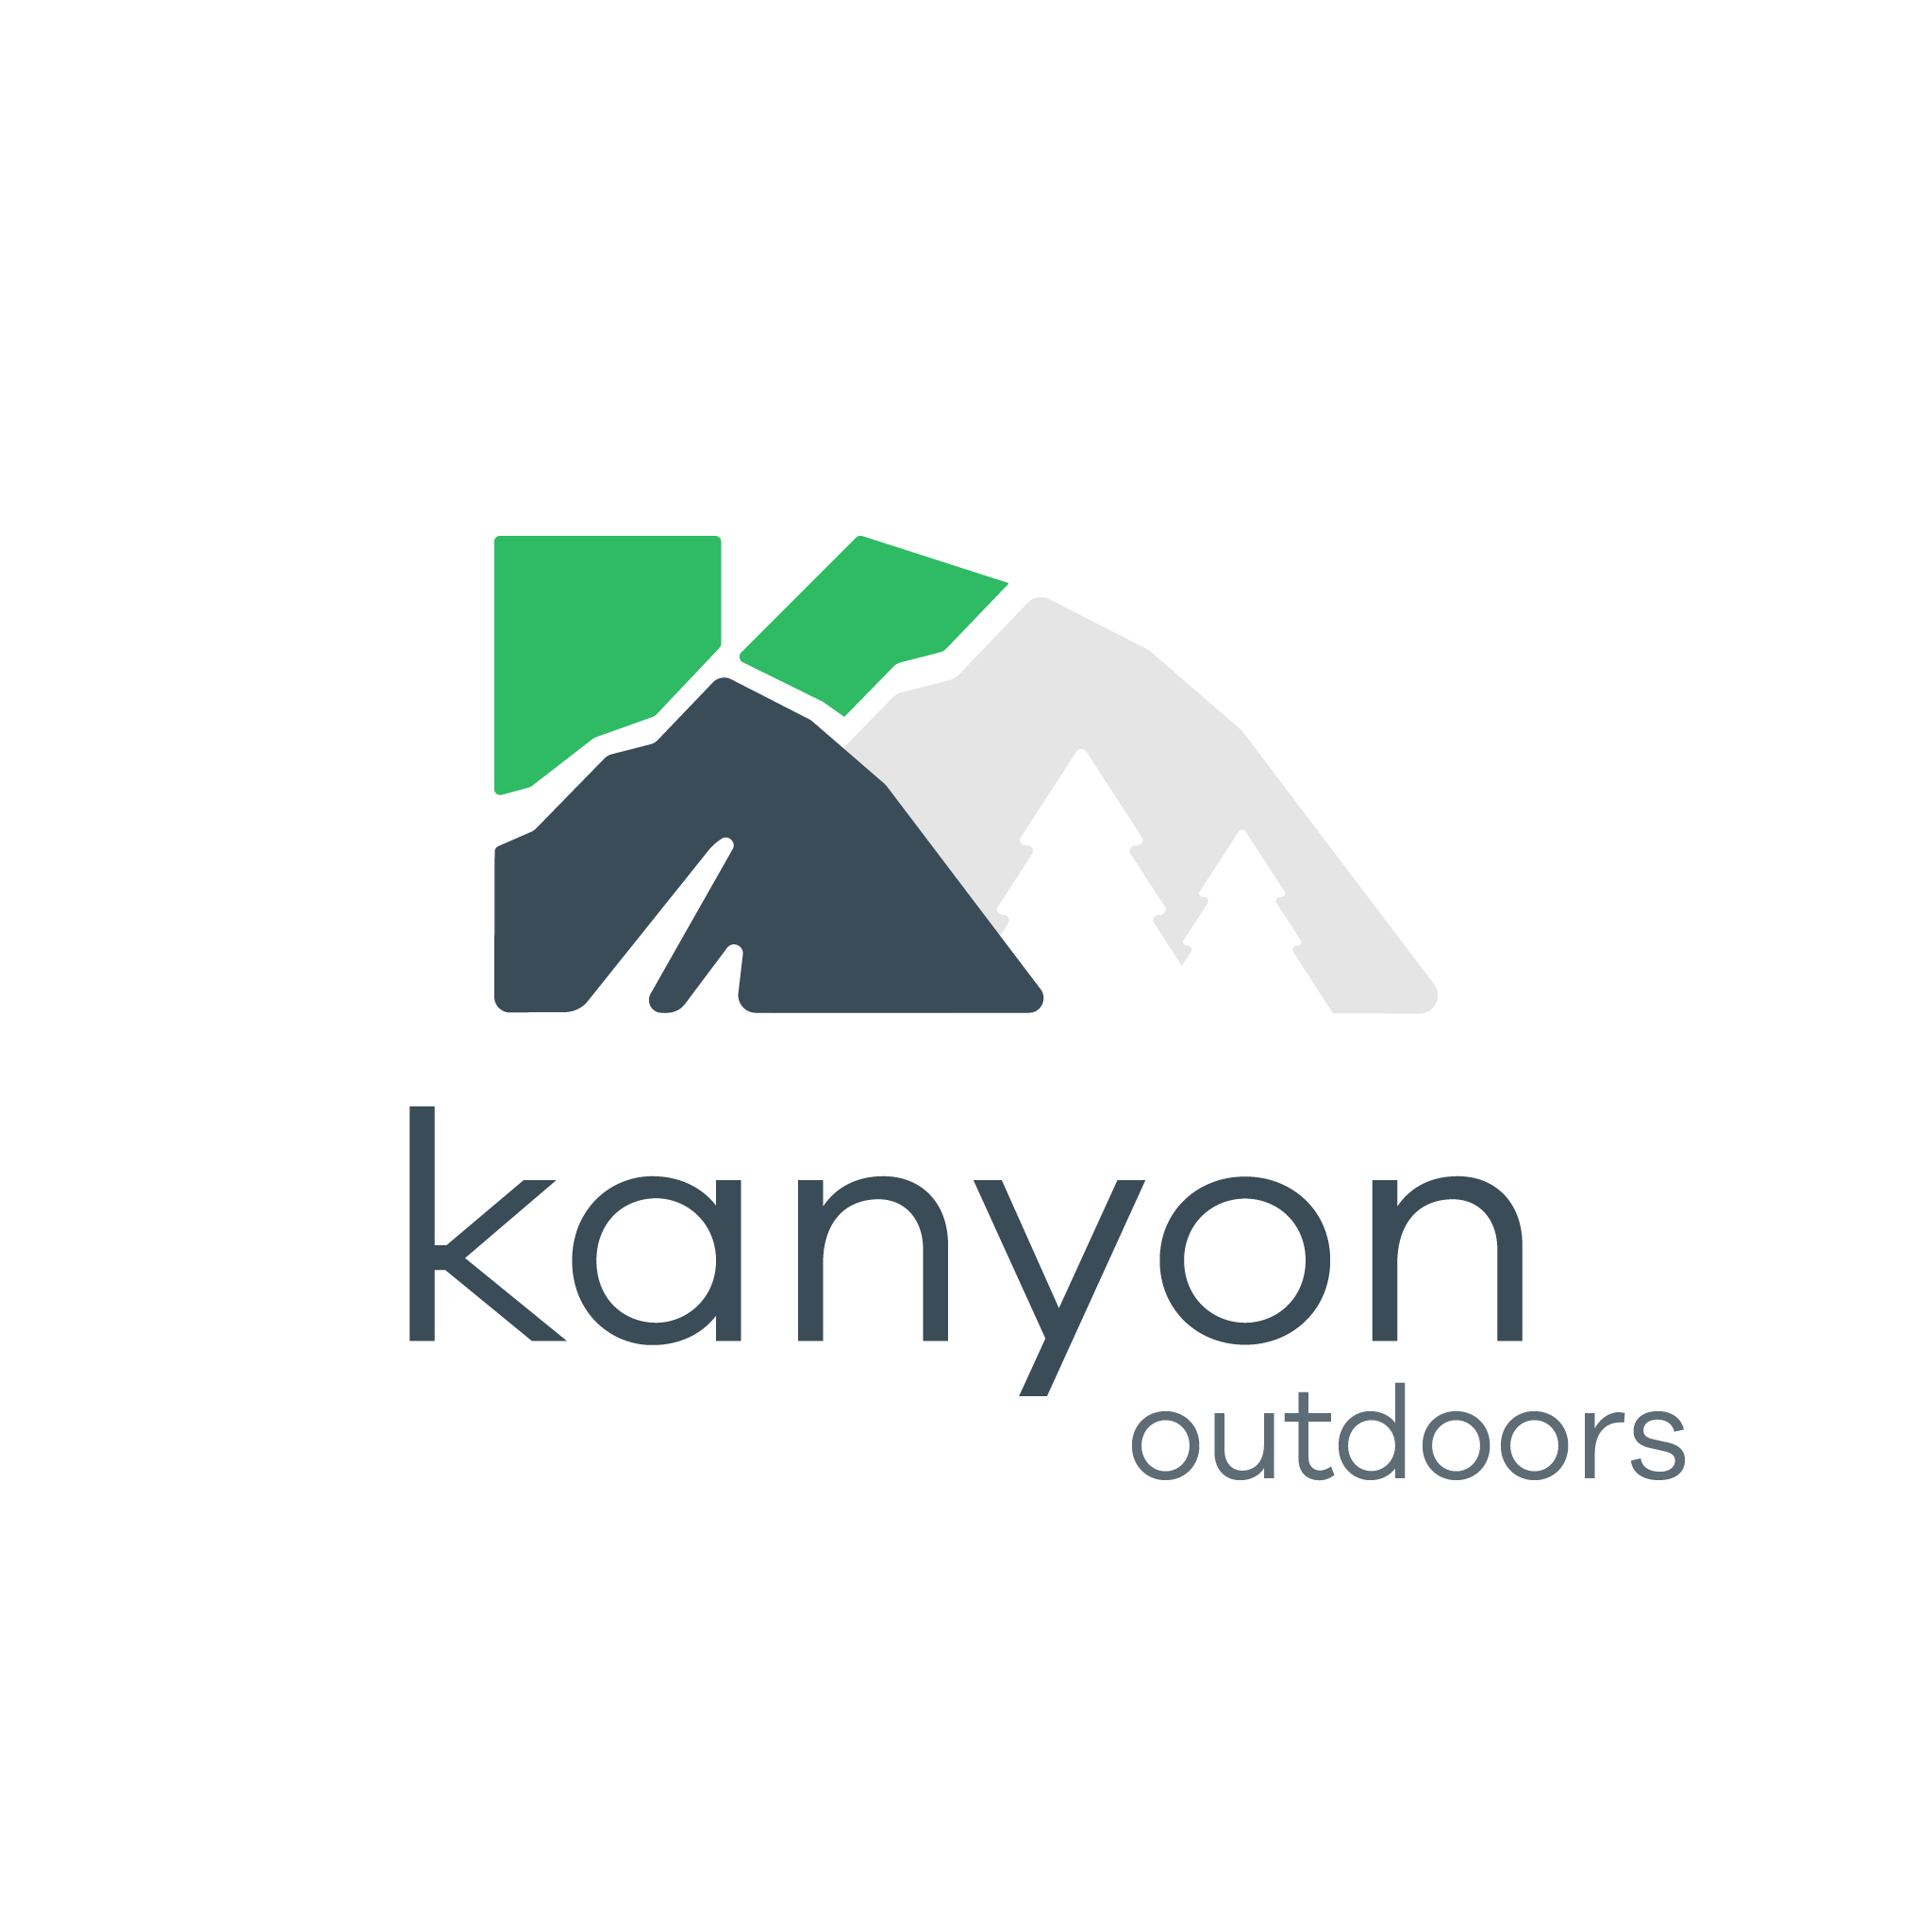 Kanyon Outdoors